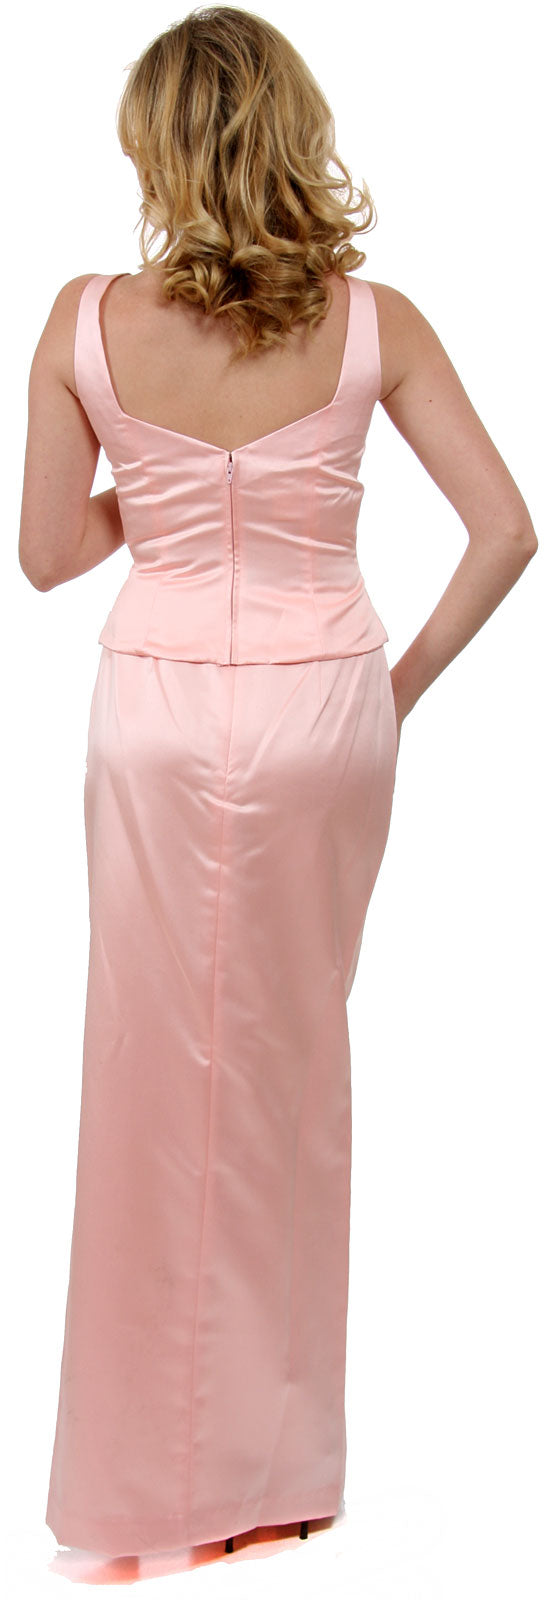 Back image of Satin Beaded Full Length Bridesmaid Dress